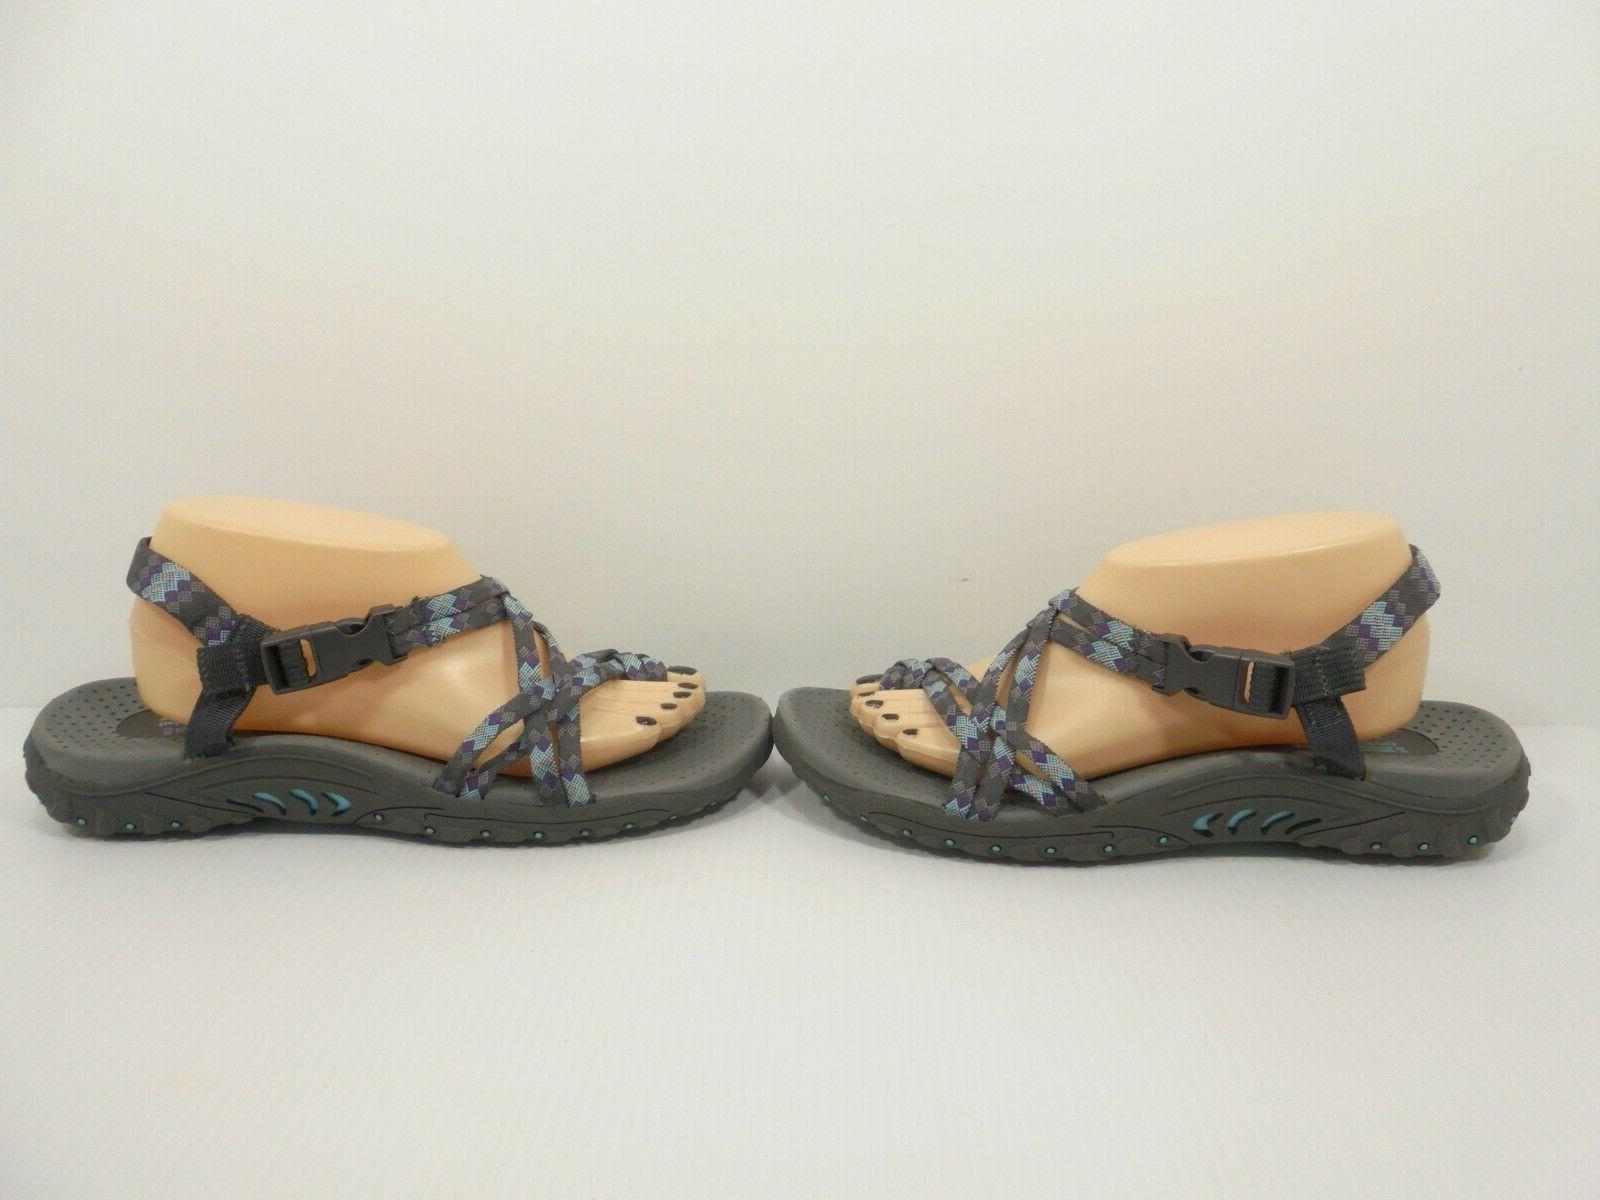 NEW! Womens LIFESTYLE Sandals - 10 M